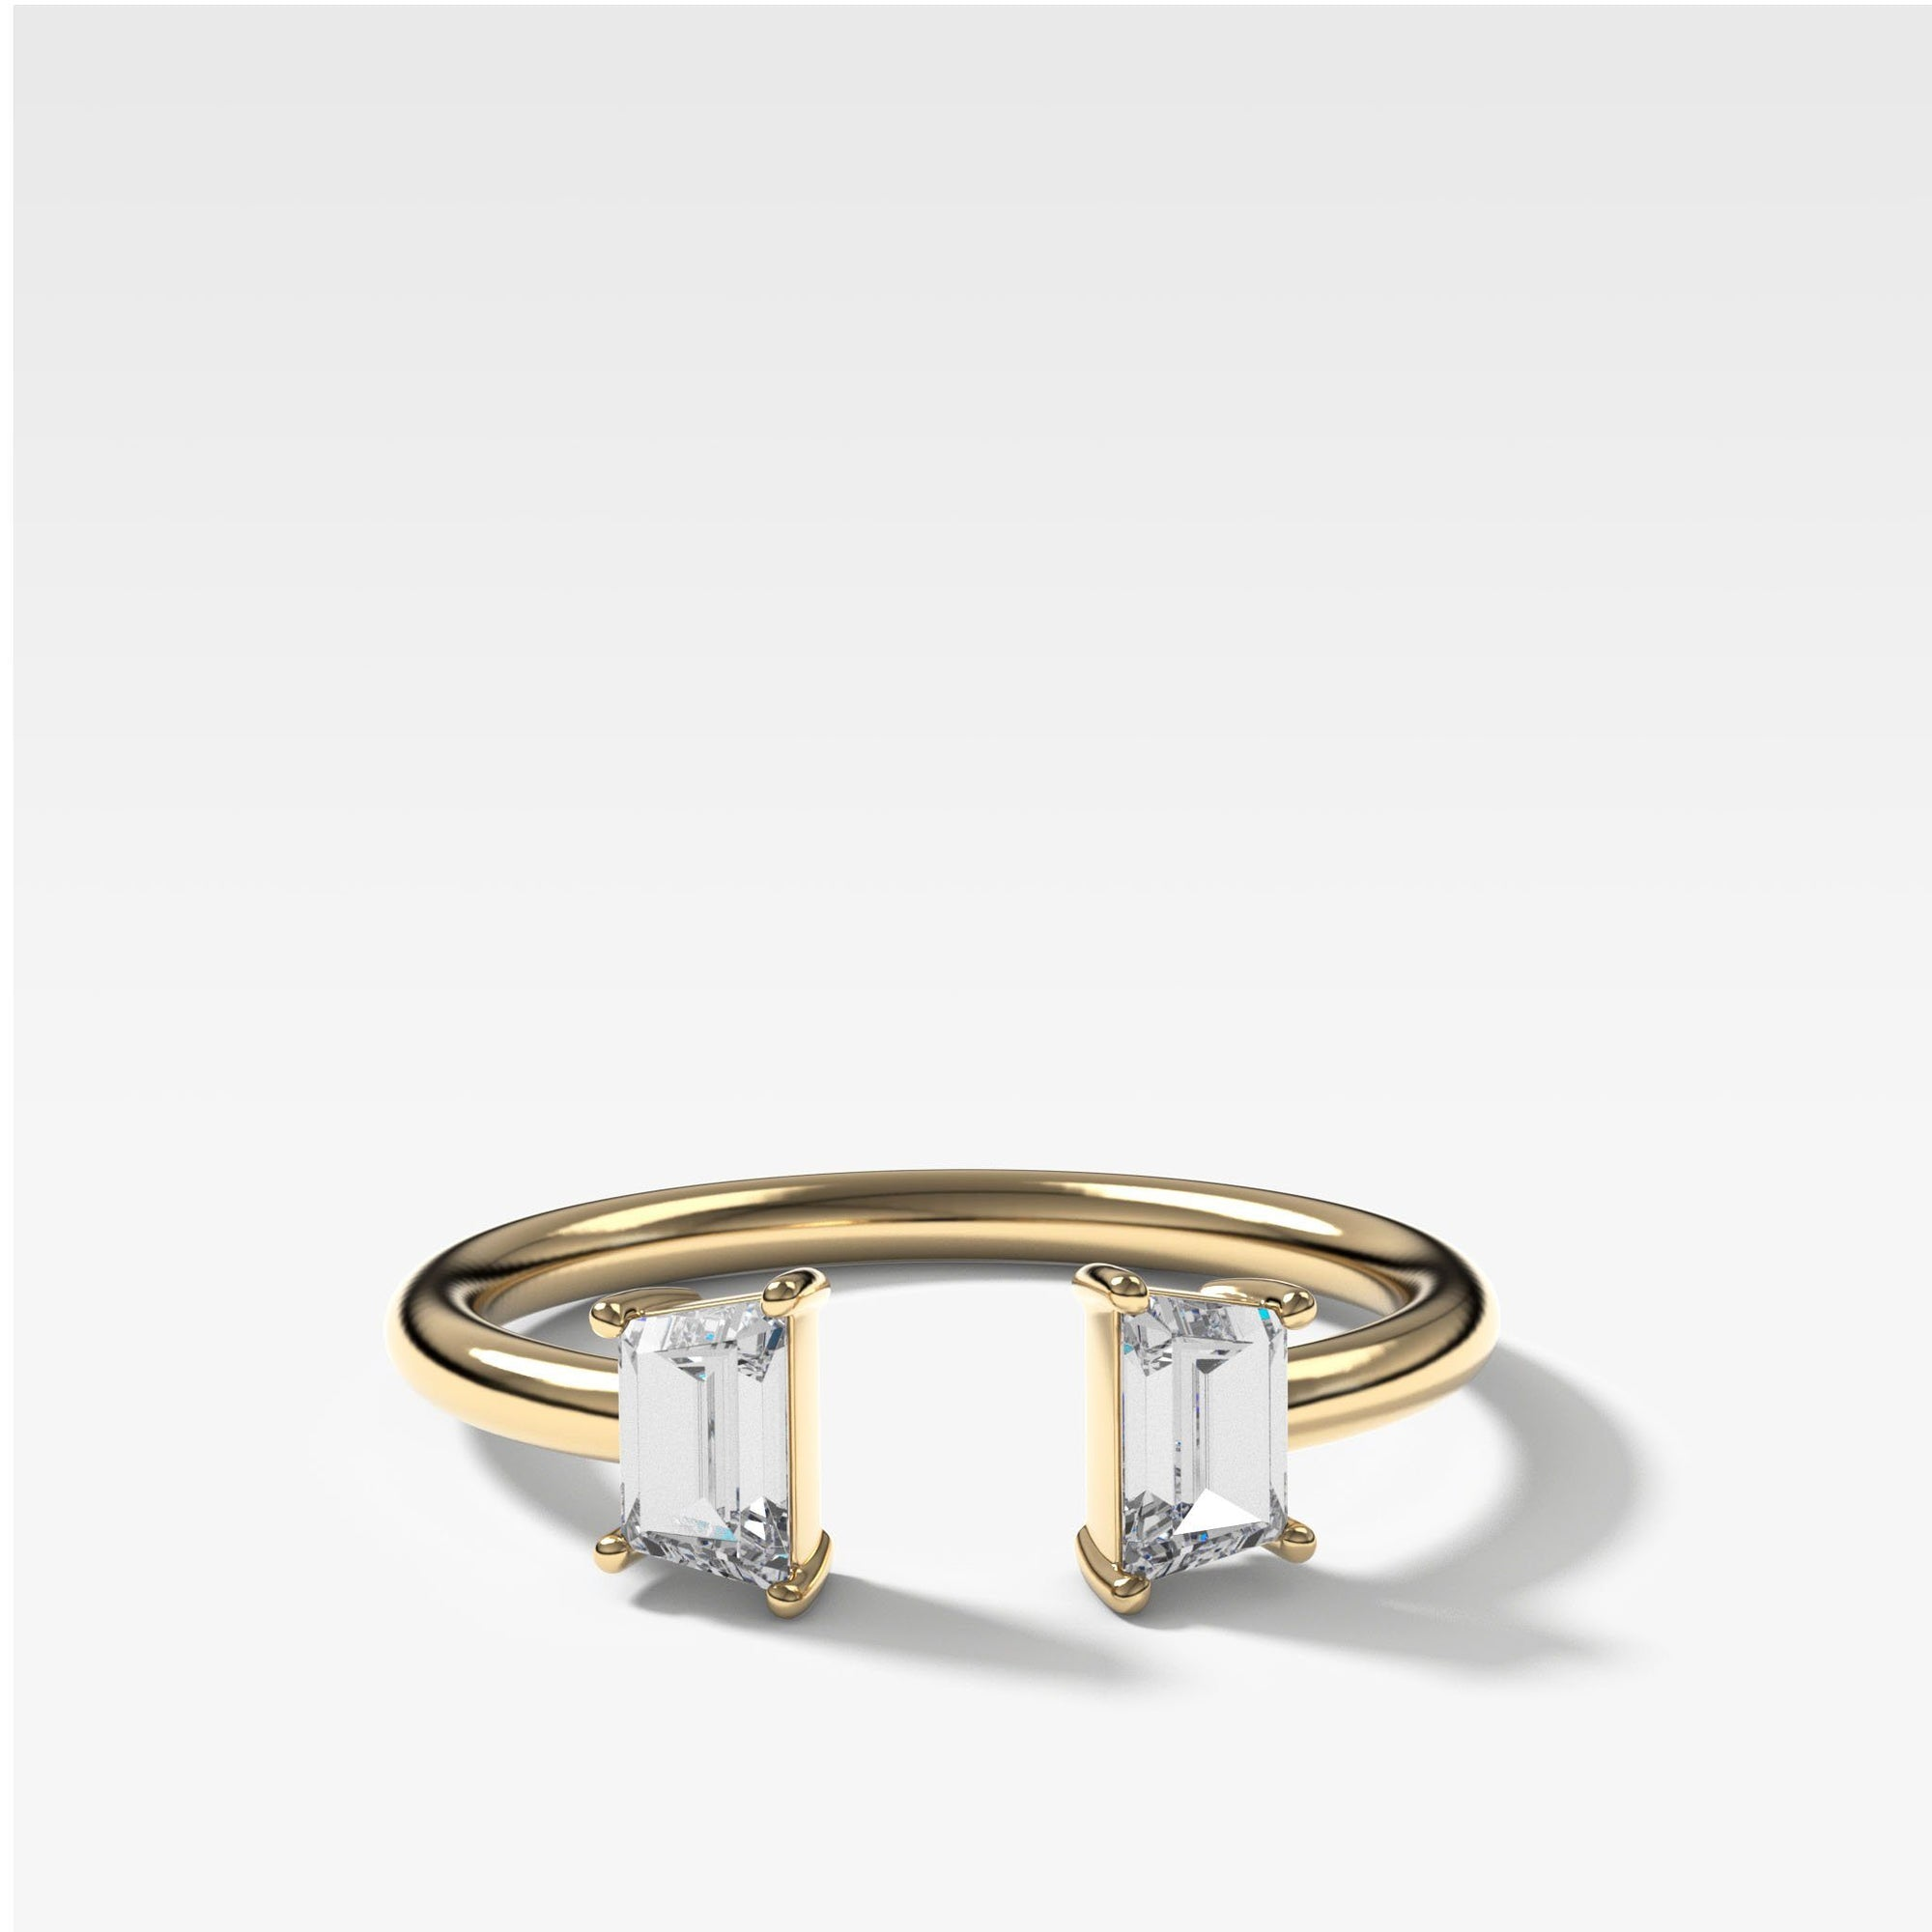 Twin Traps Diamond Finger Cuff in Yellow Gold by Good Stone